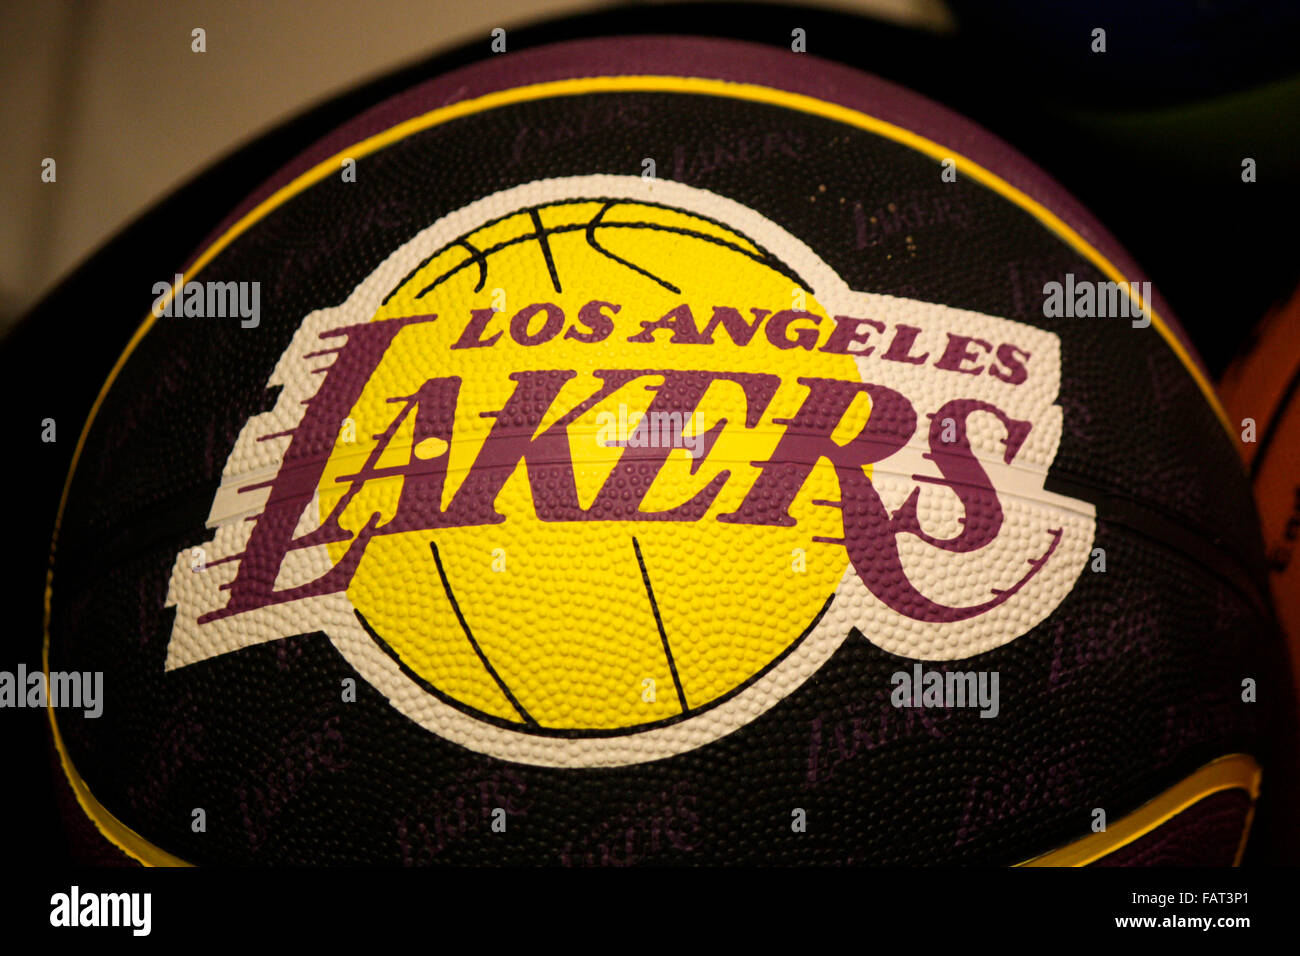 Lakers Logo High Resolution Stock Photography And Images Alamy